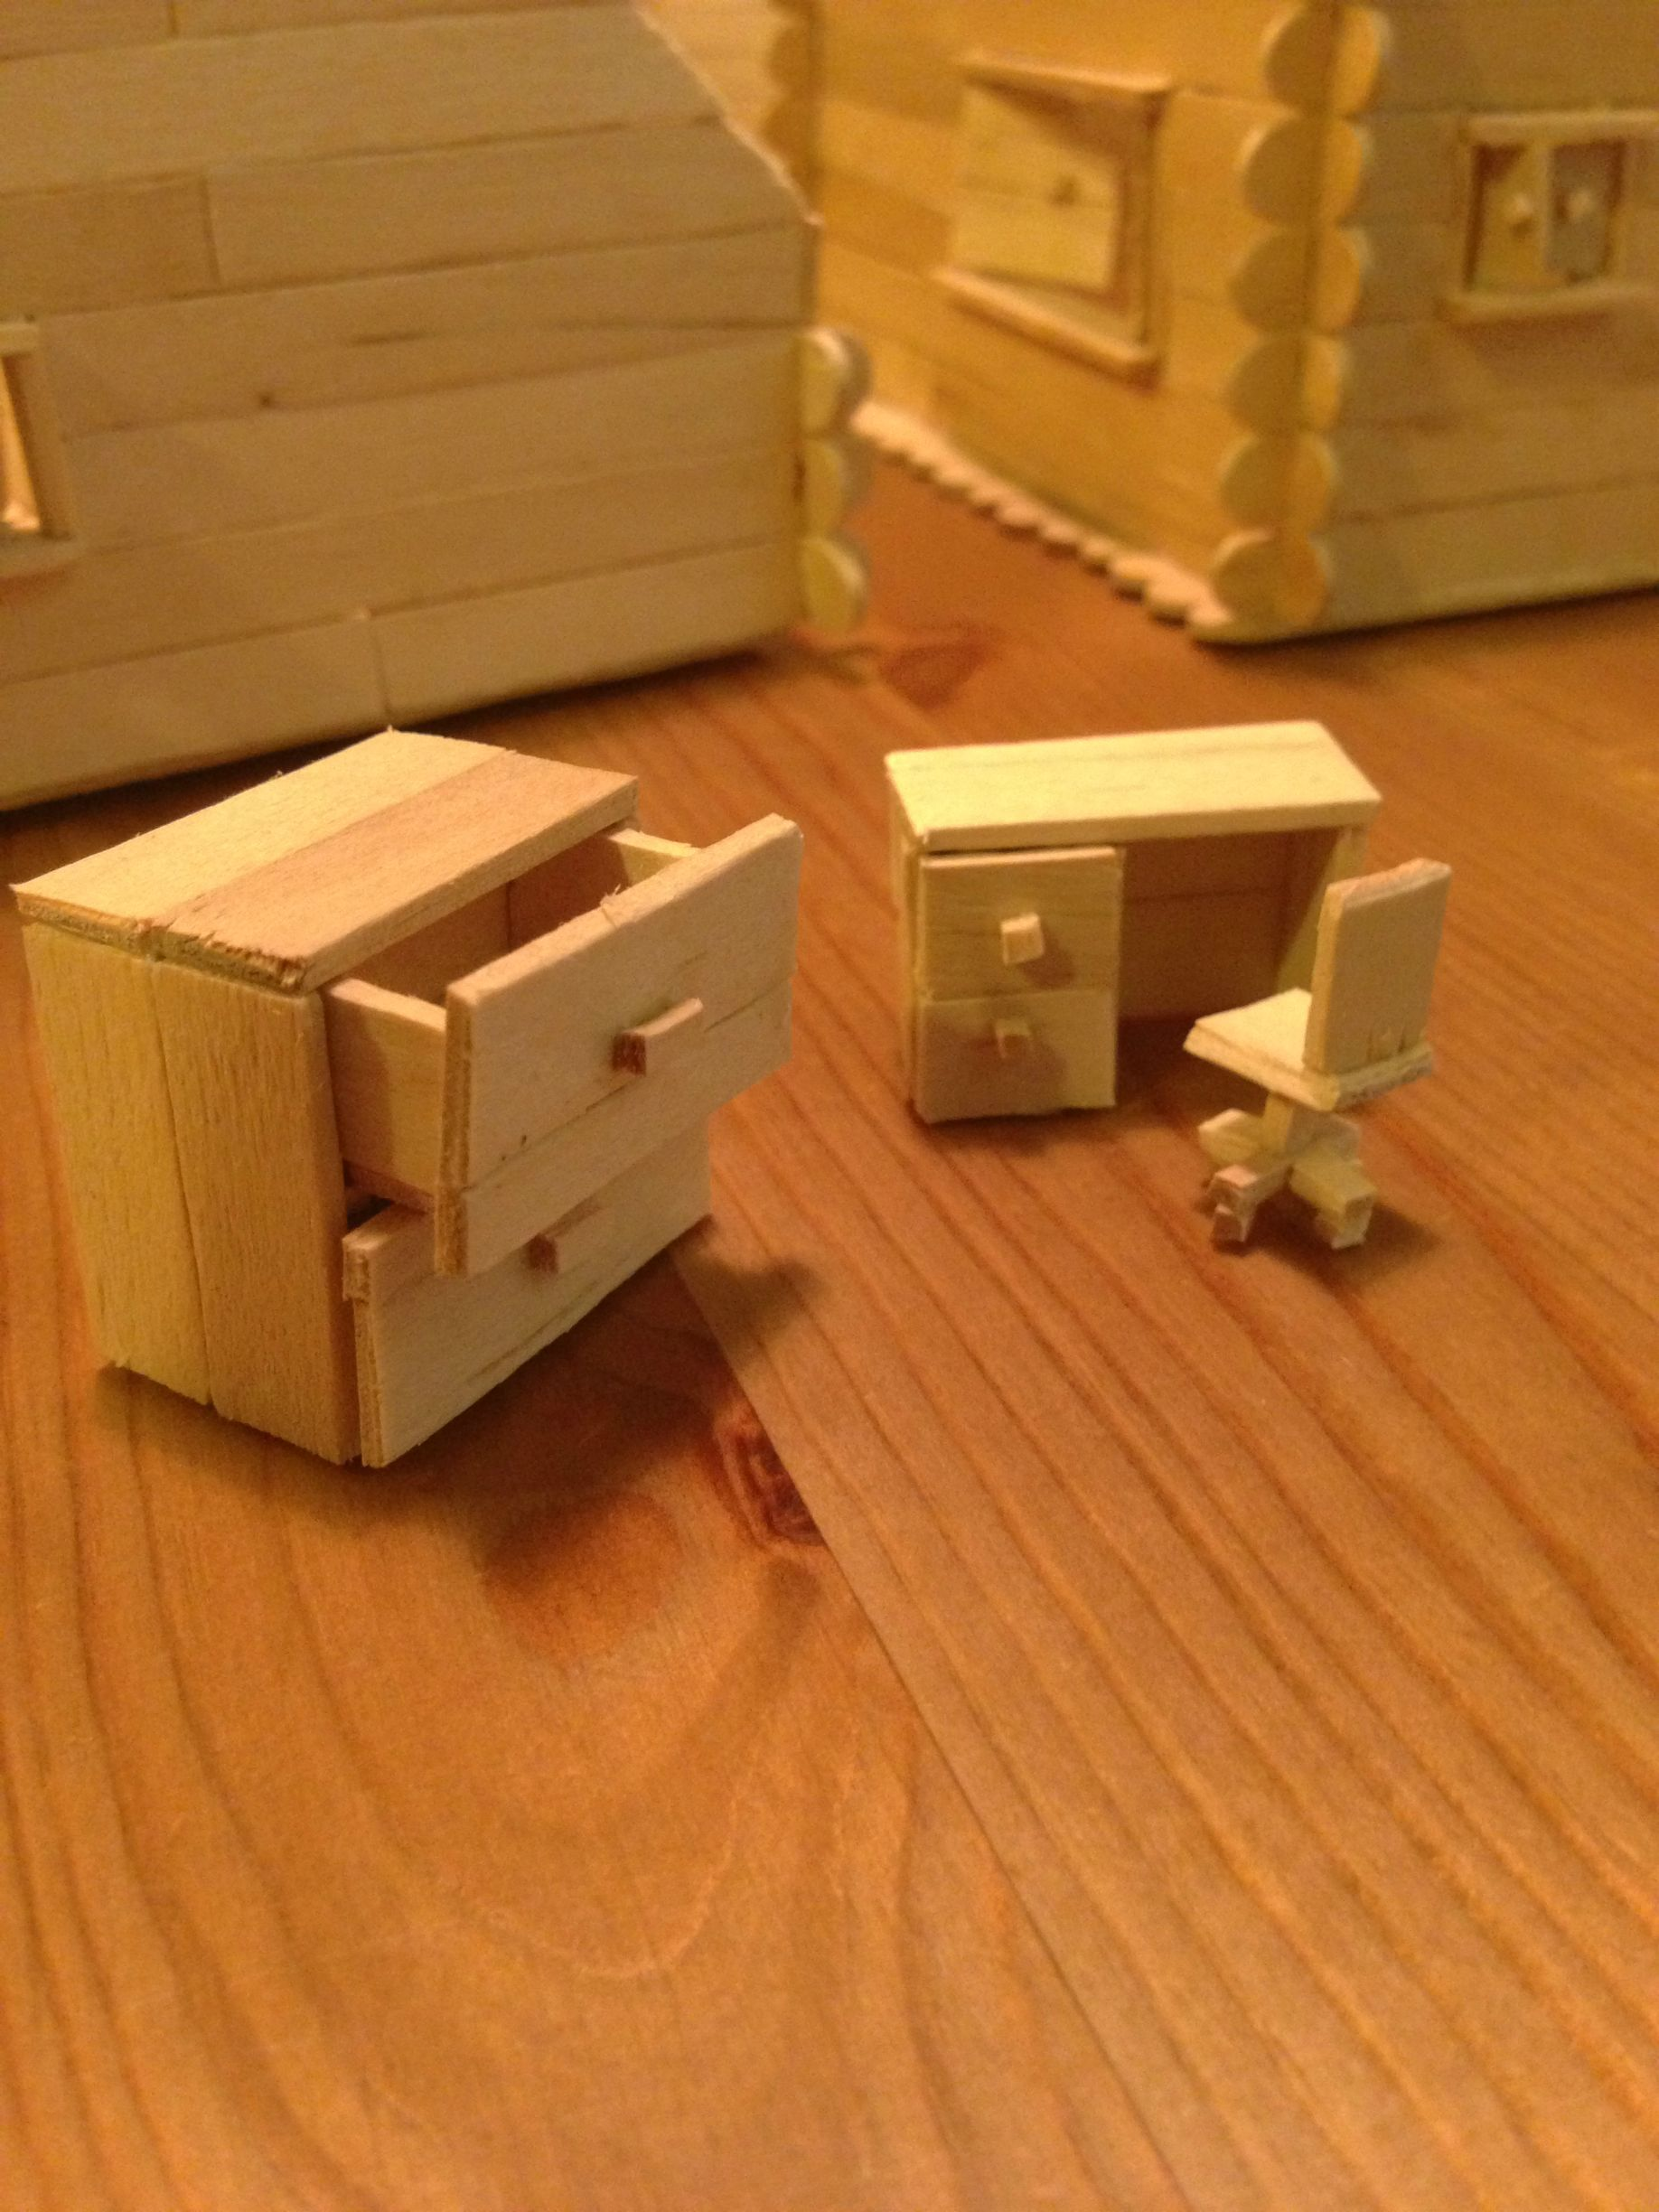 Delicieux Decided To Build A Popsicle Stick House, It Got A Little Out Of Hand   Imgur